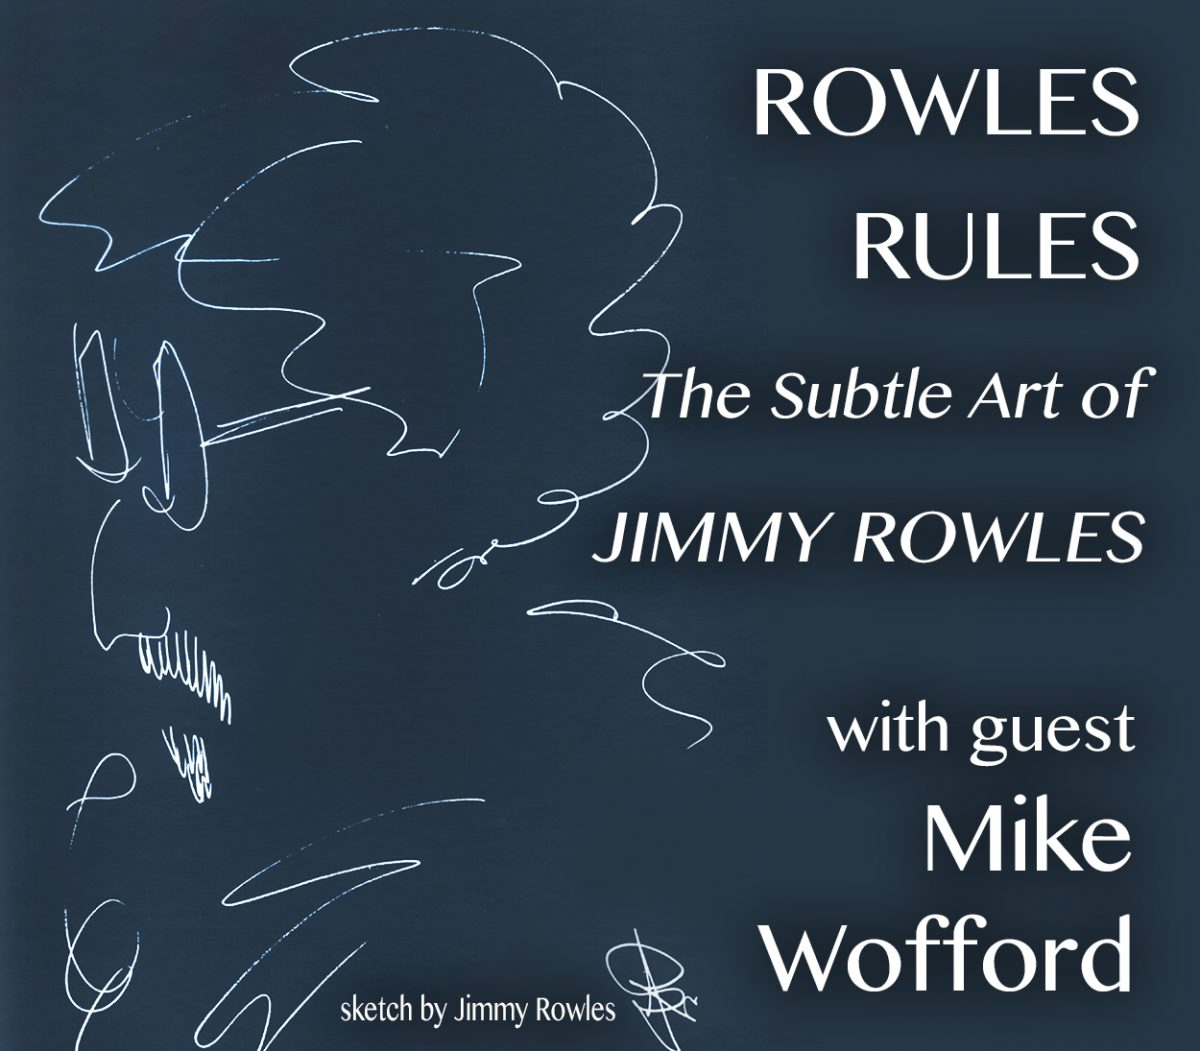 Rowles Rules: The Subtle Art of Jimmy Rowles, with Guest Mike Wofford